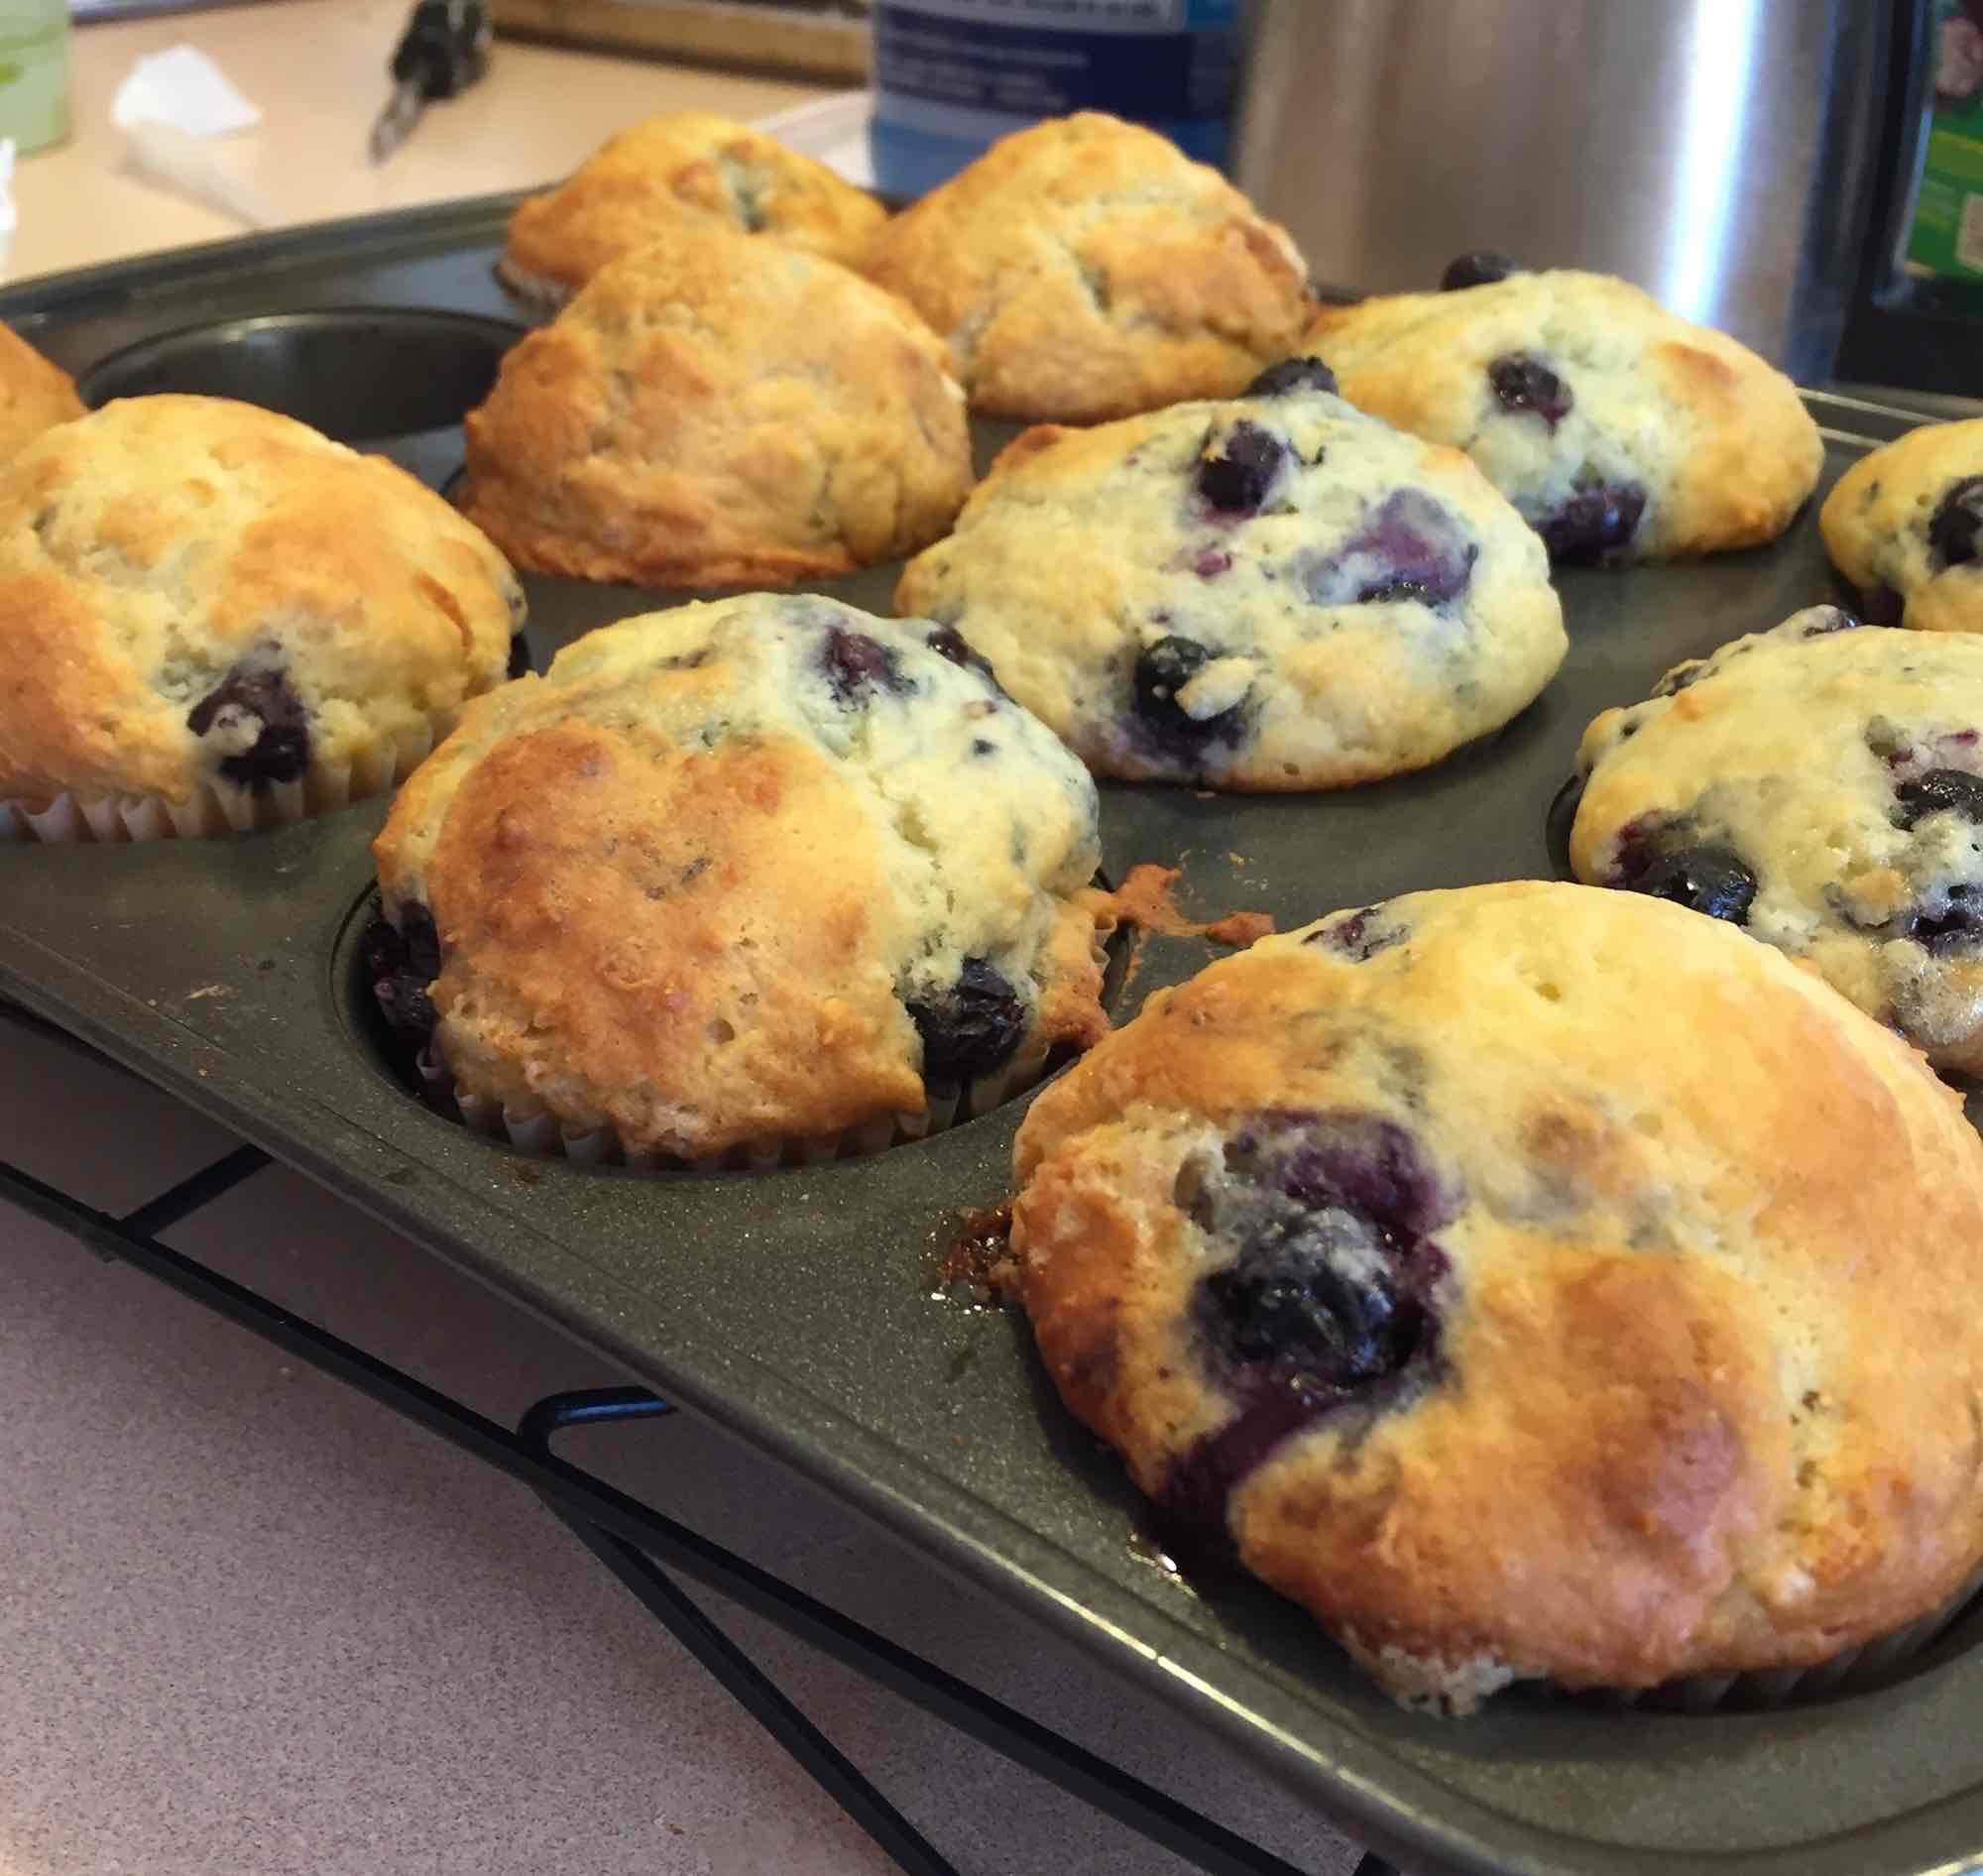 Blueberry muffins in muffin pan made with Classic Homestyle Muffin Mix